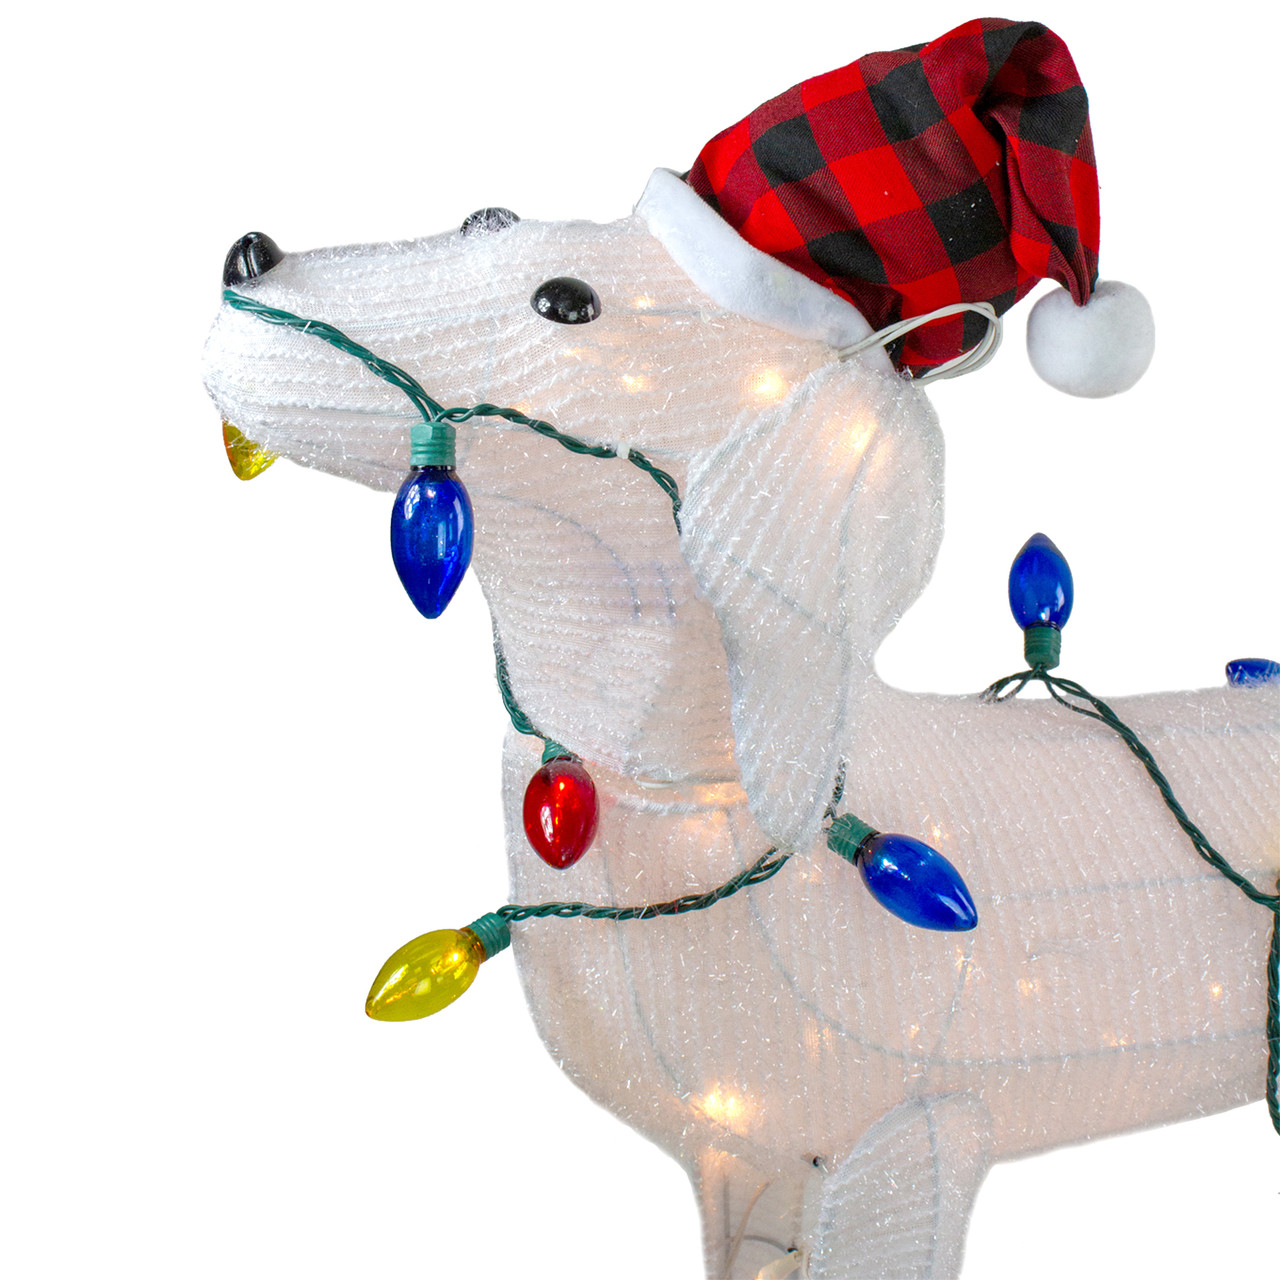 285 3 d standing decorative dog lighted christmas outdoor decoration 32634990 - Outdoor Lighted Dog Christmas Decorations